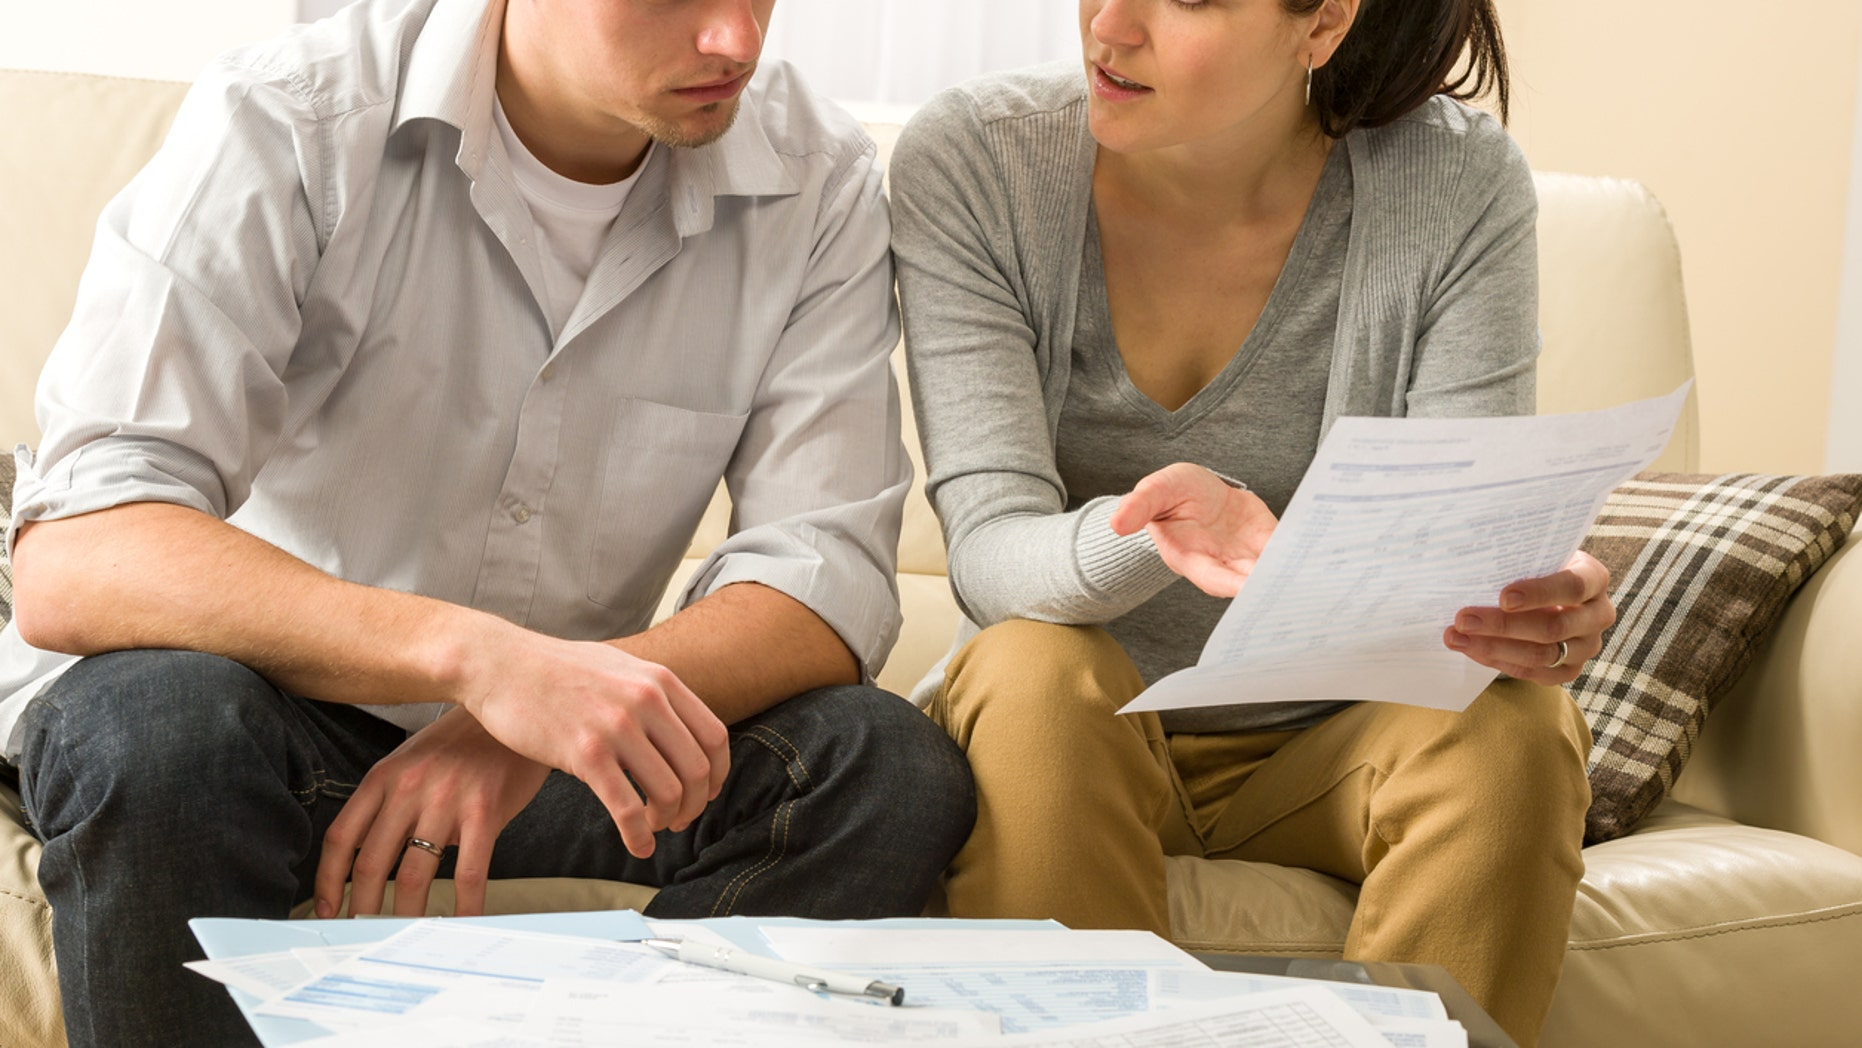 Worried couple talking about their expenses and financial problems